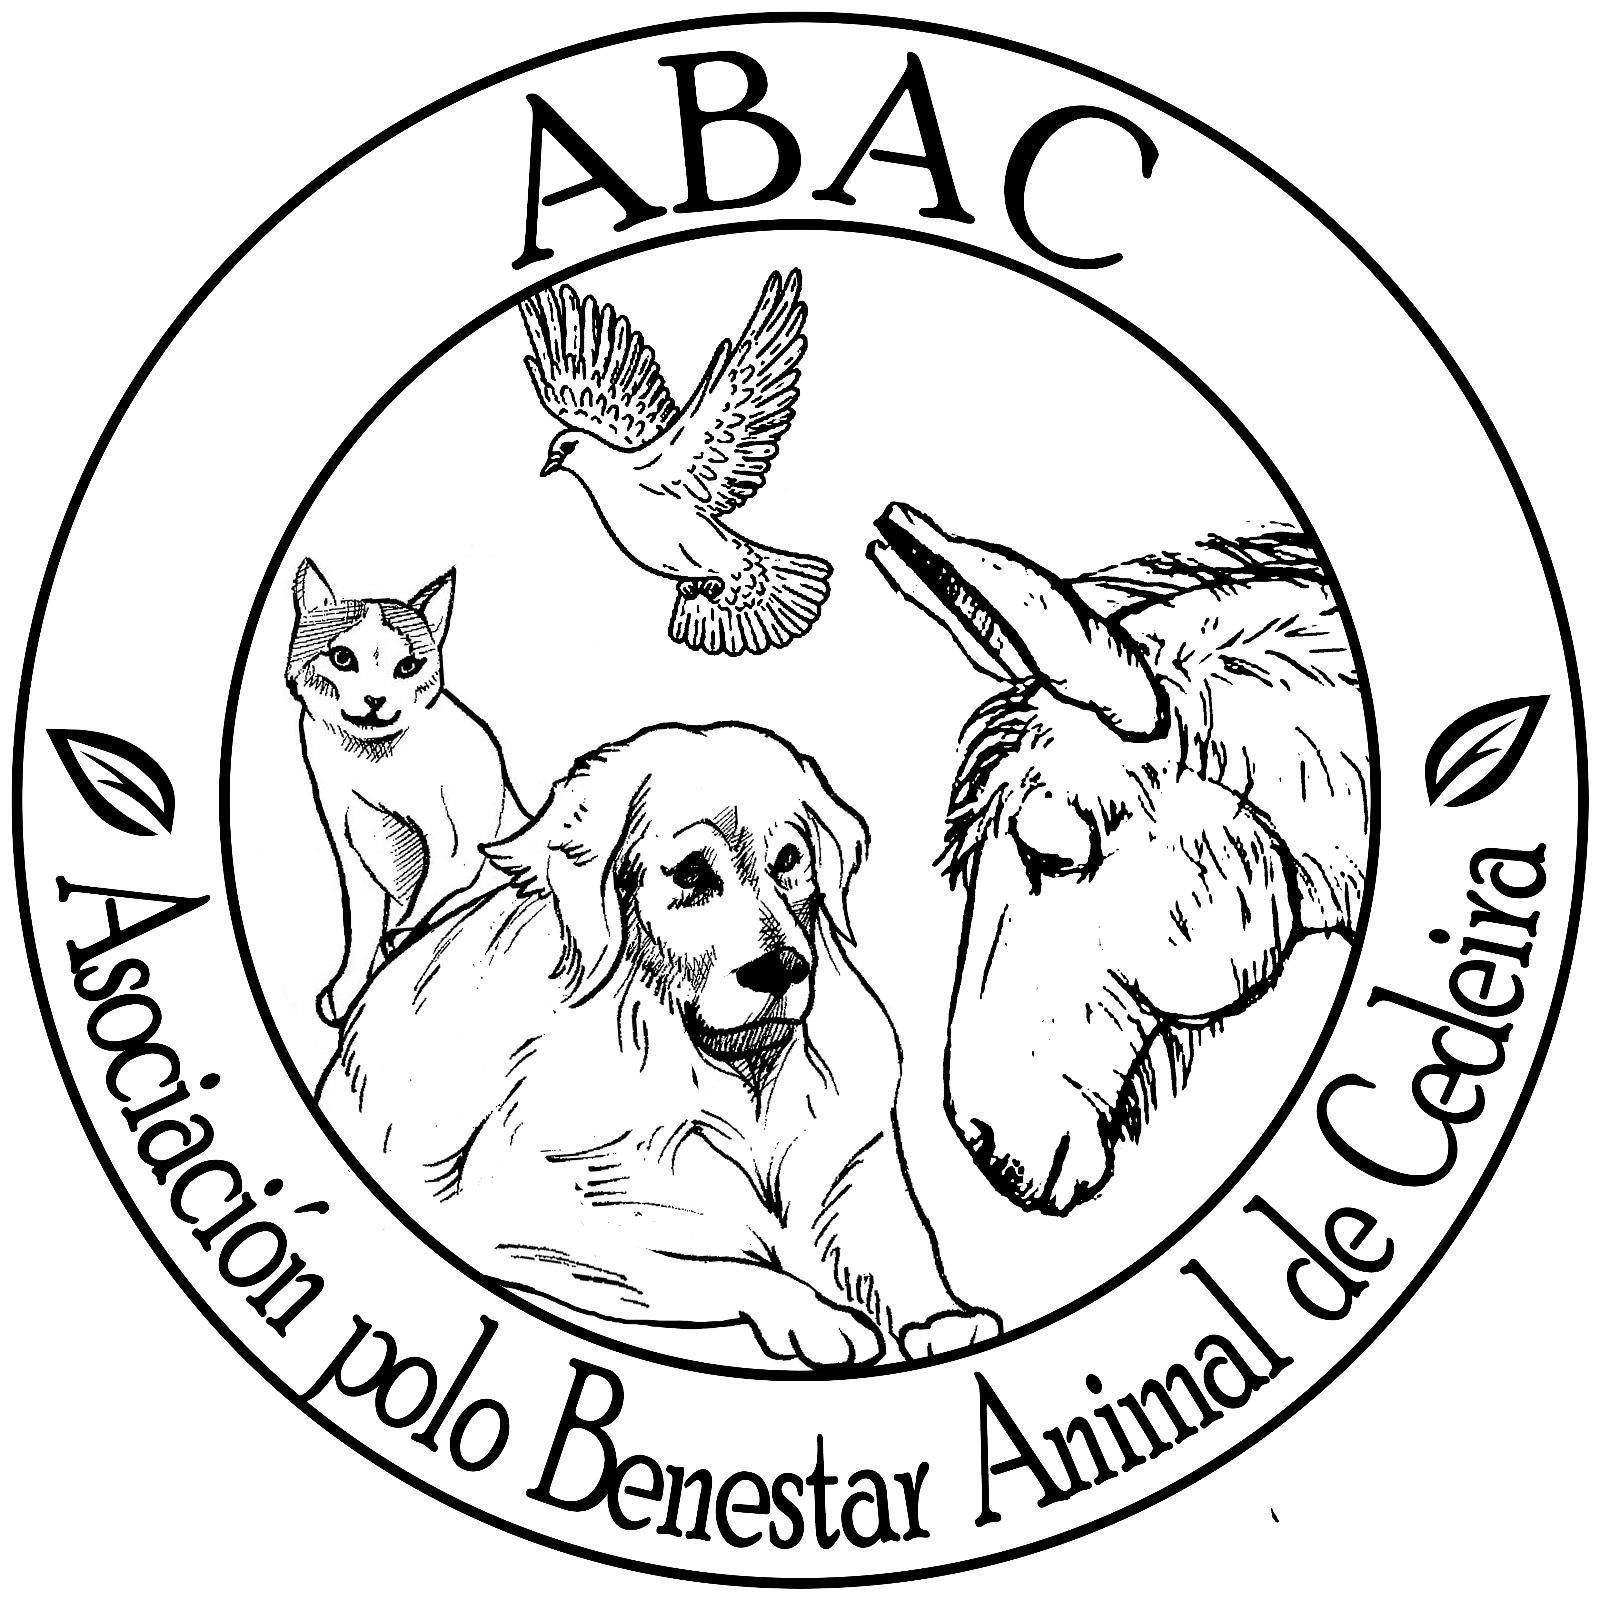 Image of: Horse Abac Association For Animal Welfare Cedeira Rebloggy Abac Association For Animal Welfare Cedeira Teaming Group